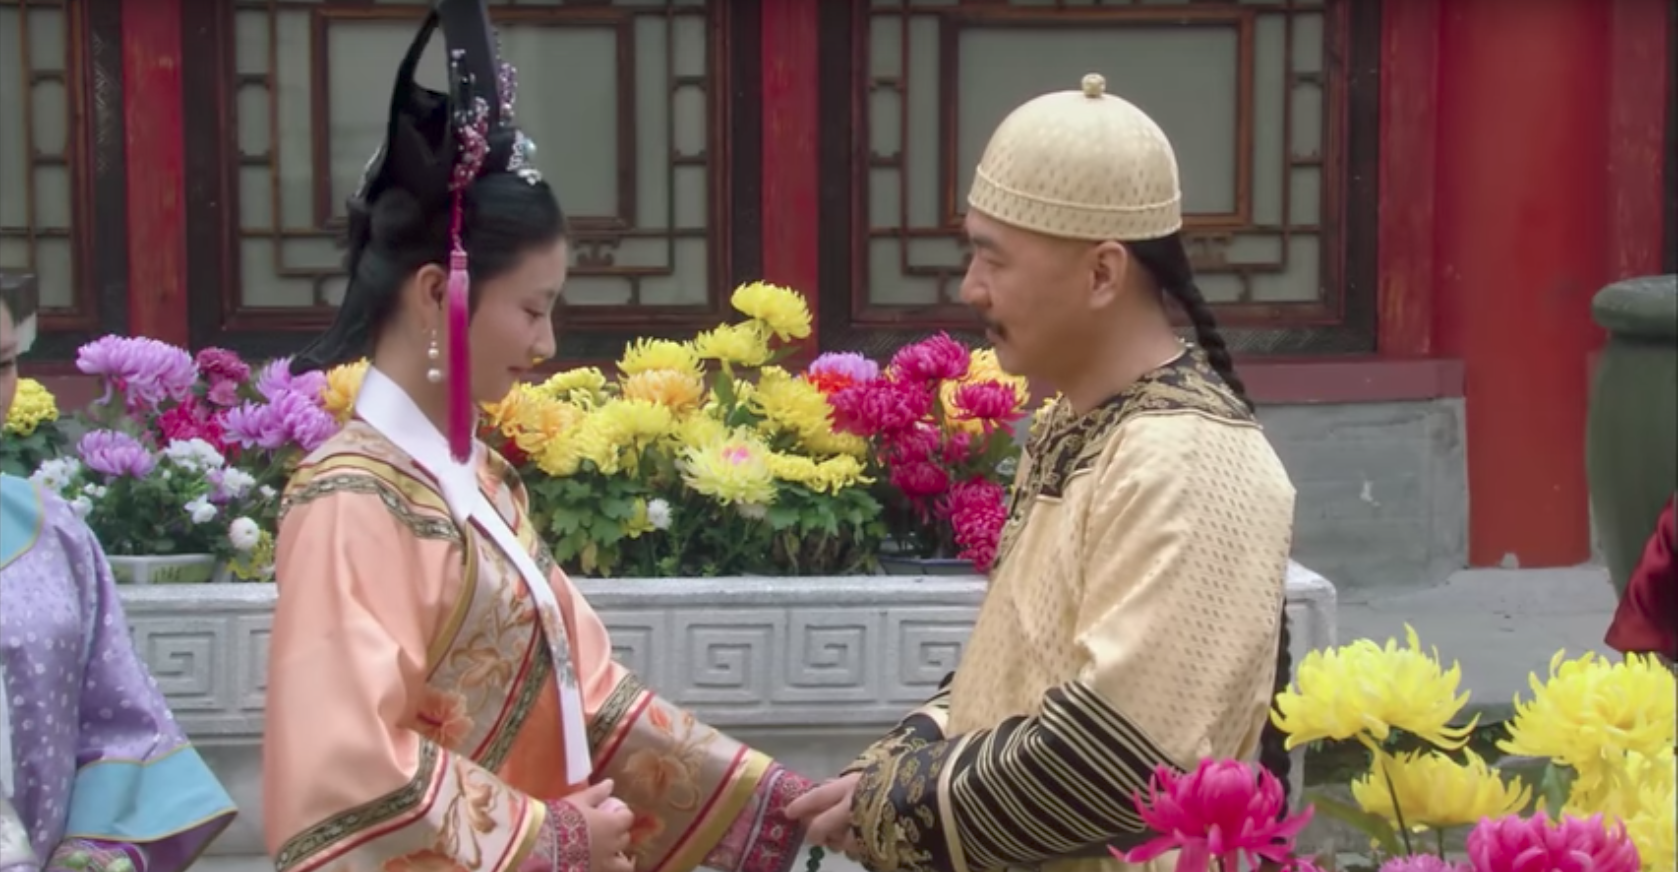 Empress in Palace, Shen Meizhuang says she likes chrysanthemum for its characters, capturing the emperor's heart.